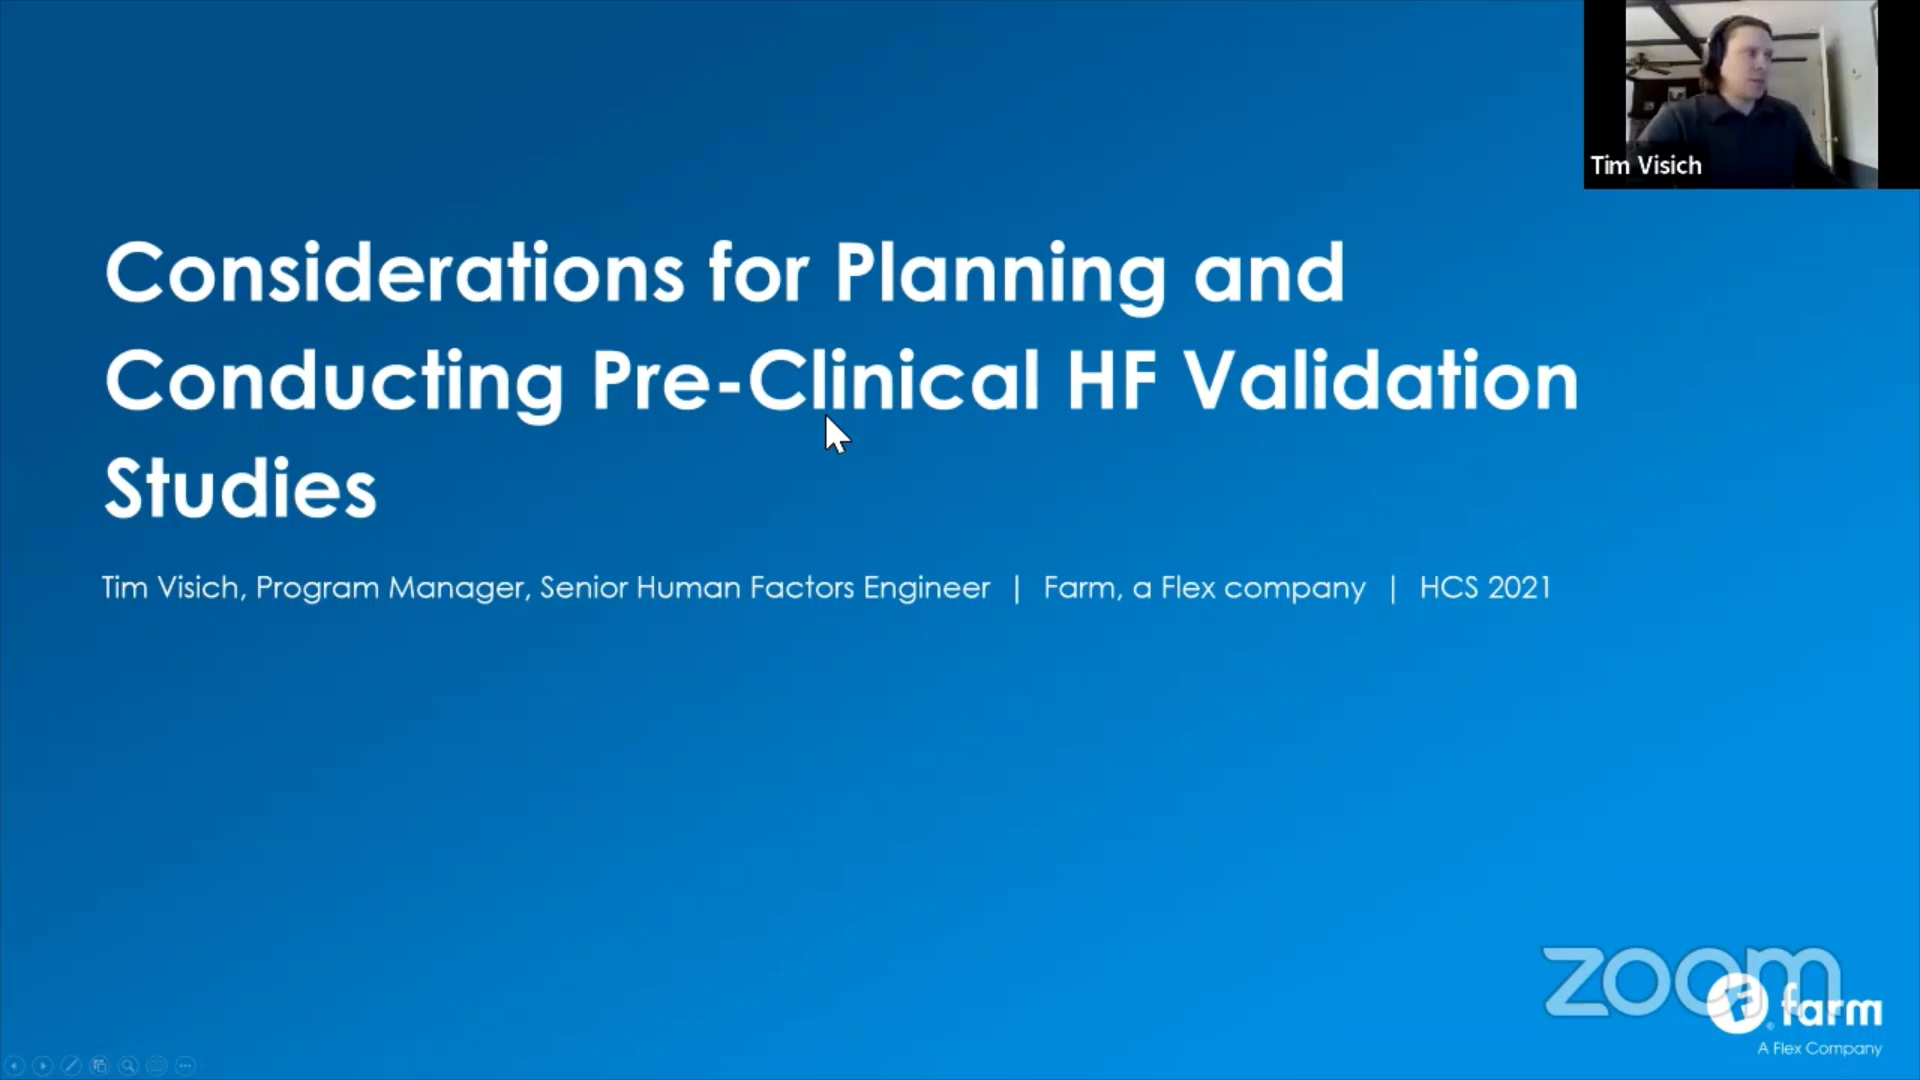 Considerations for Planning and Conducting Pre-clinical HF Validation Studies